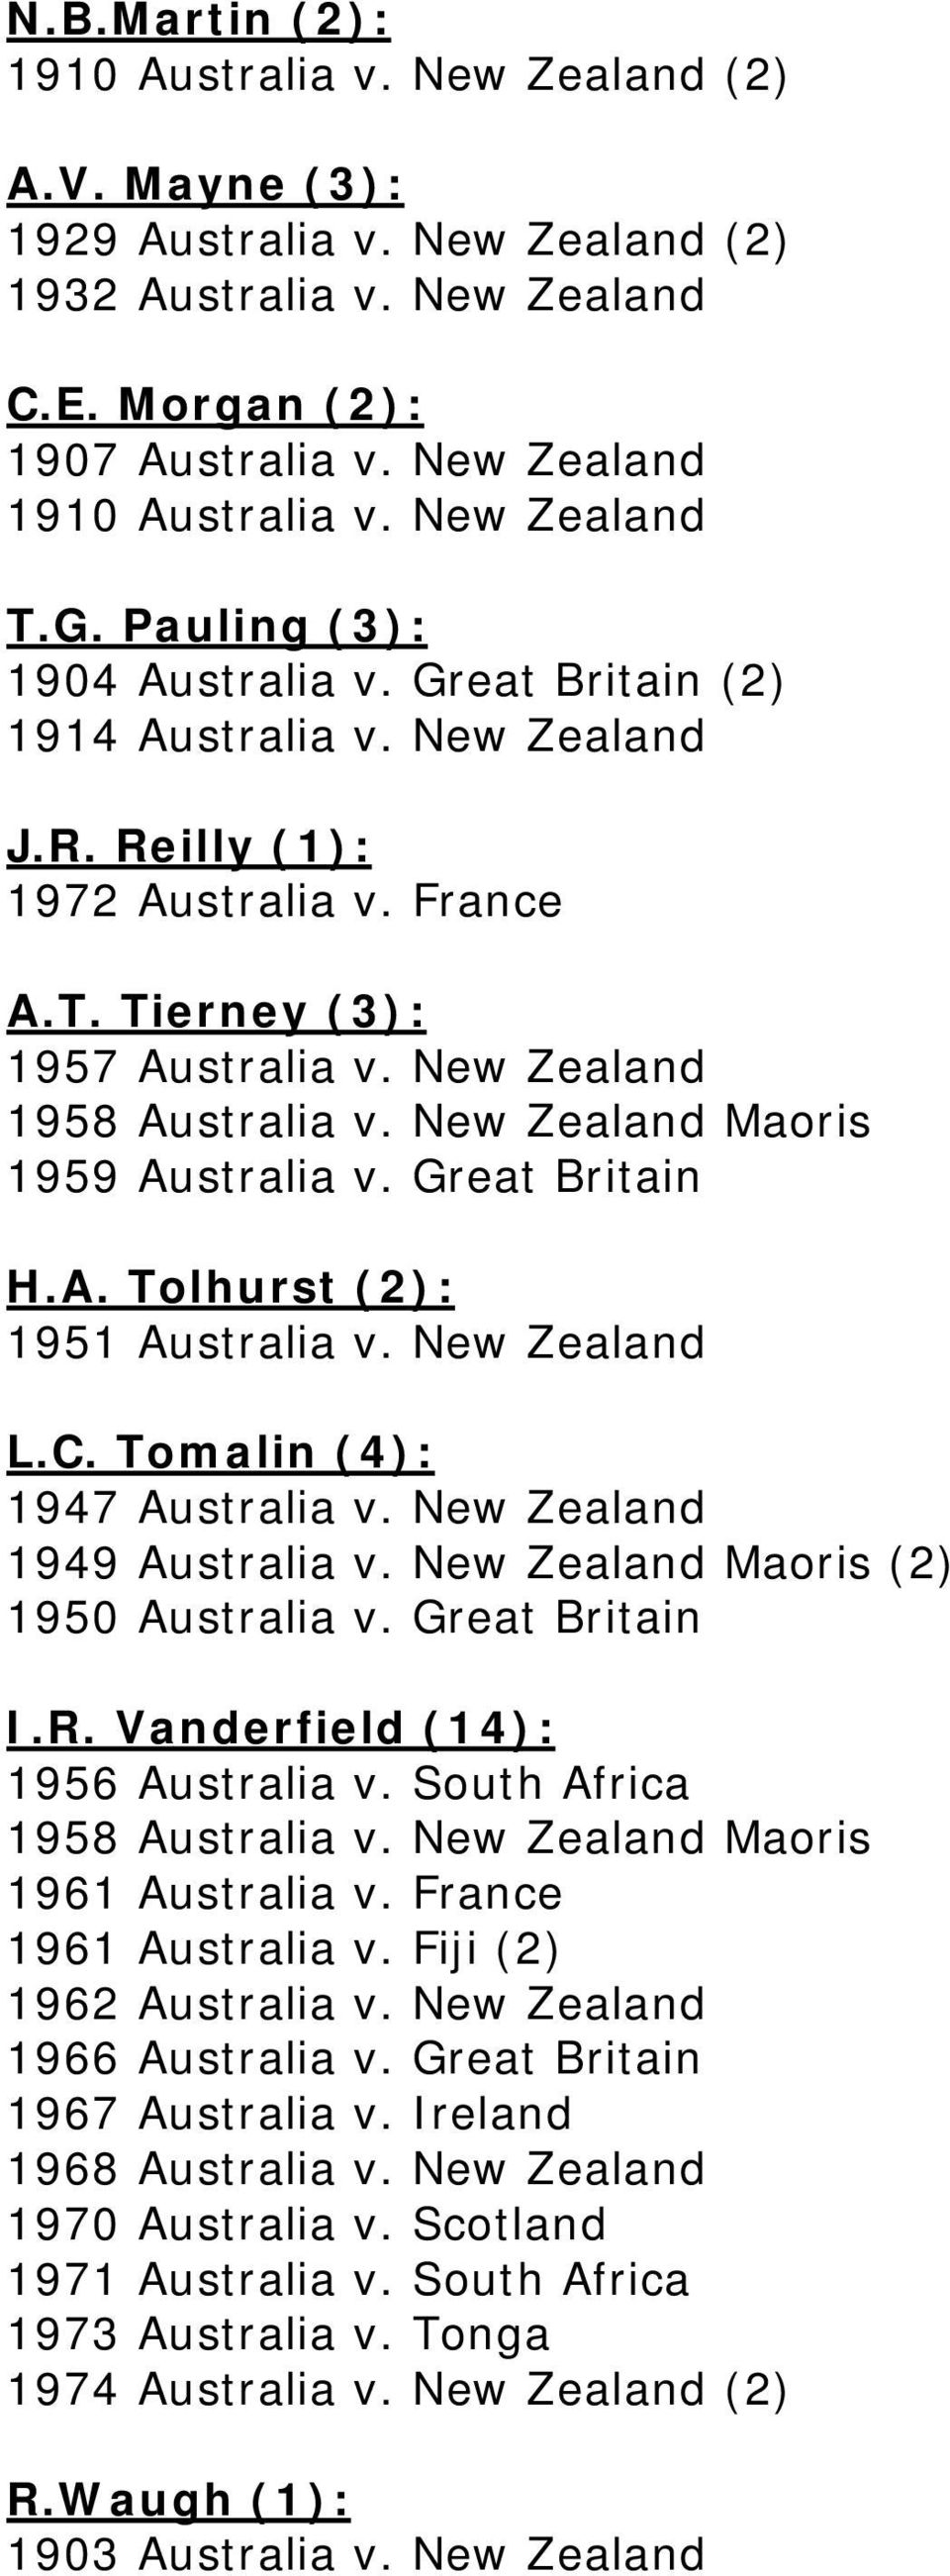 New Zealand 1958 Australia v. New Zealand Maoris 1959 Australia v. Great Britain H.A. Tolhurst (2): 1951 Australia v. New Zealand L.C. Tomalin (4): 1947 Australia v. New Zealand 1949 Australia v.